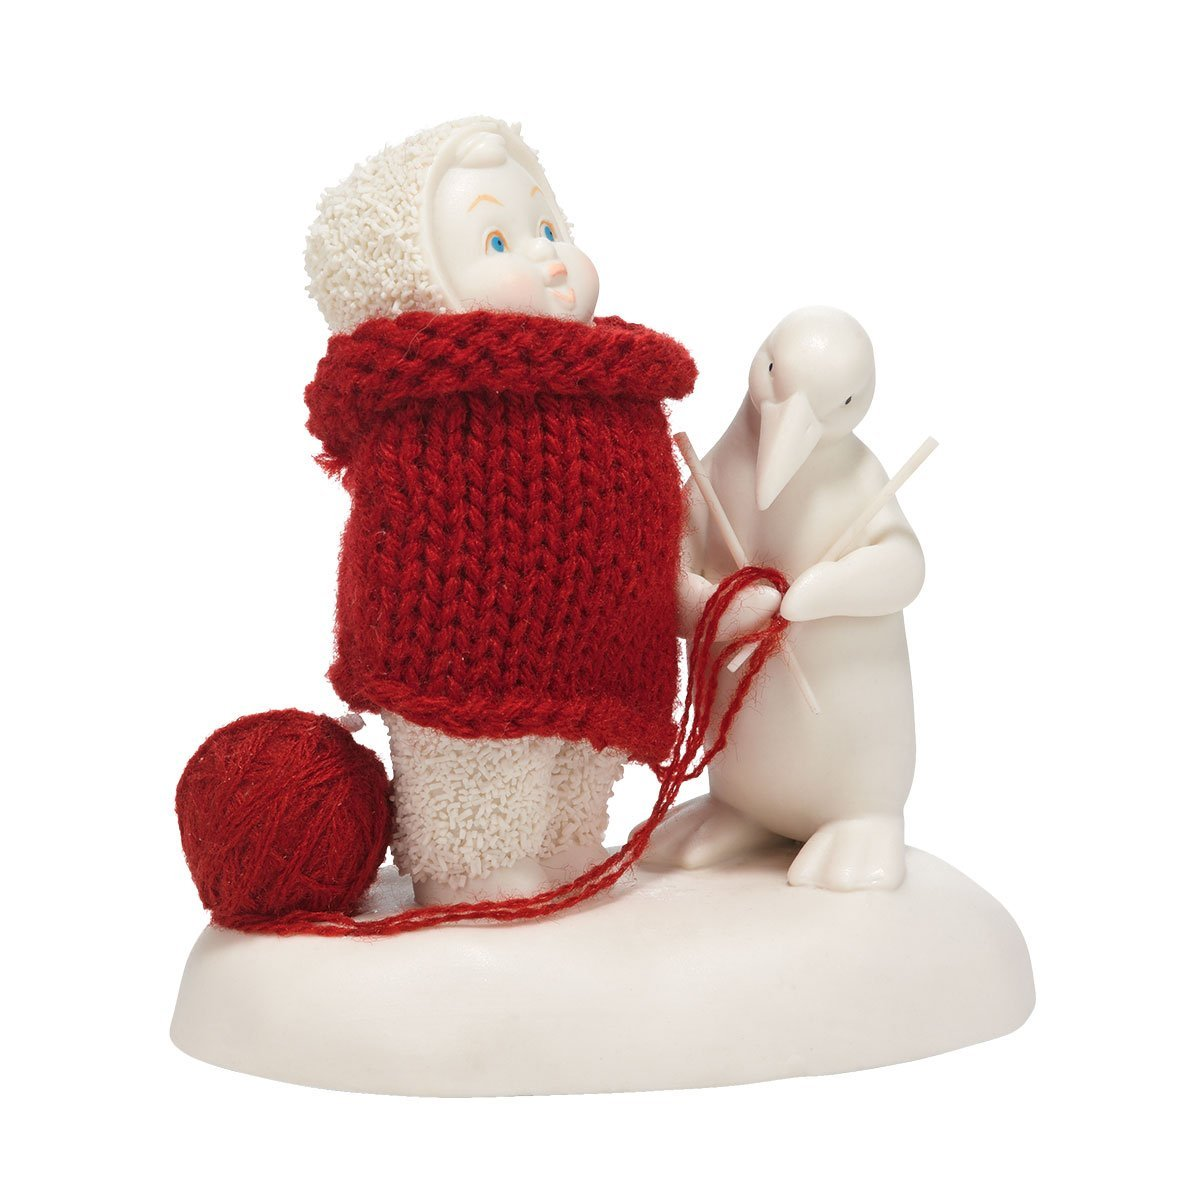 Department 56 Department 56 Department 56 Classics My Christmas Sweater Figurine, 4.25-Inch